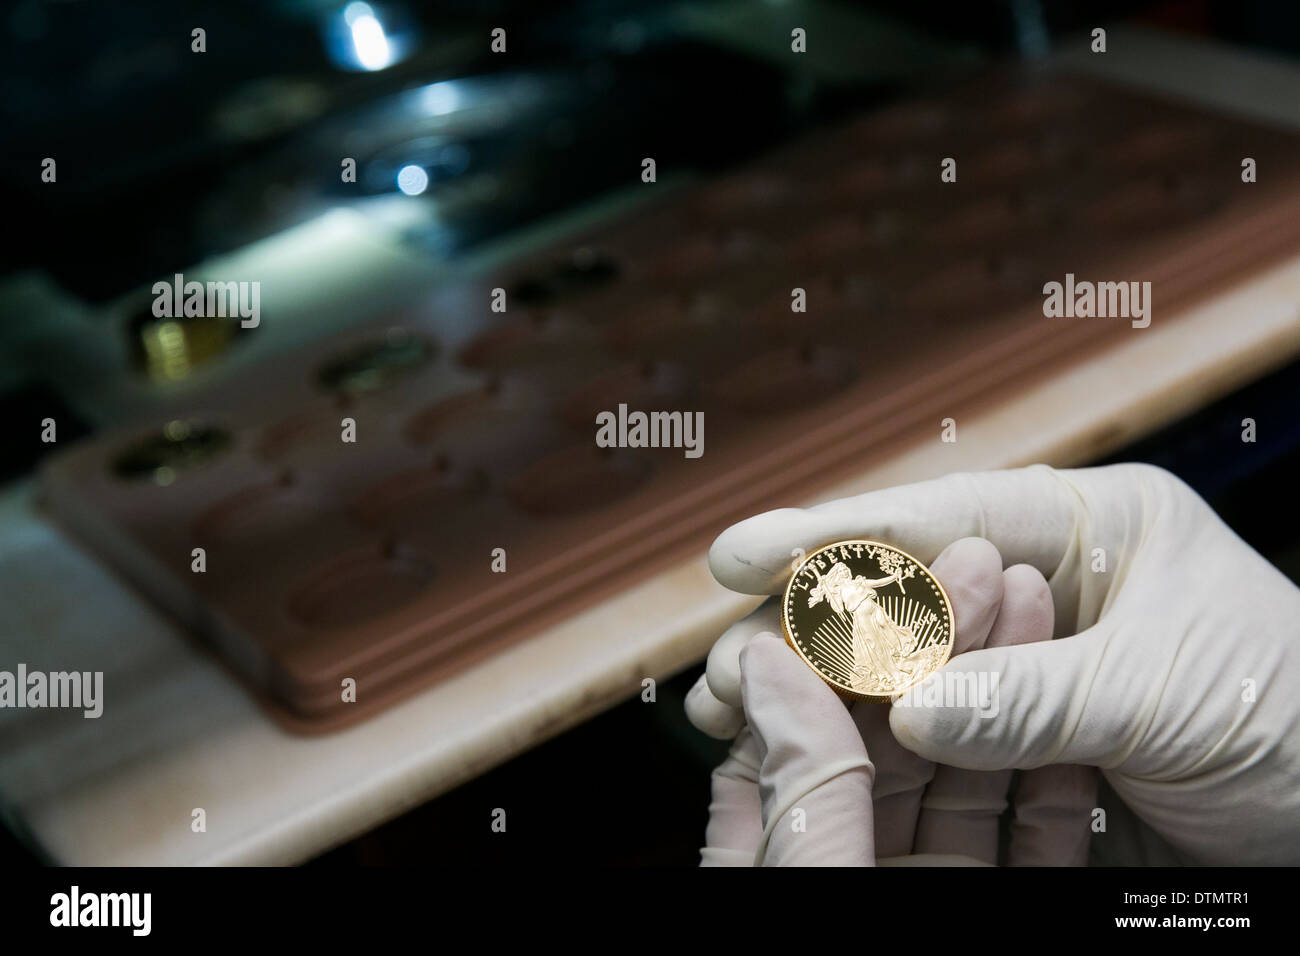 1 ounce Gold Eagle bullion and proof coin production at the West Point Mint.  - Stock Image